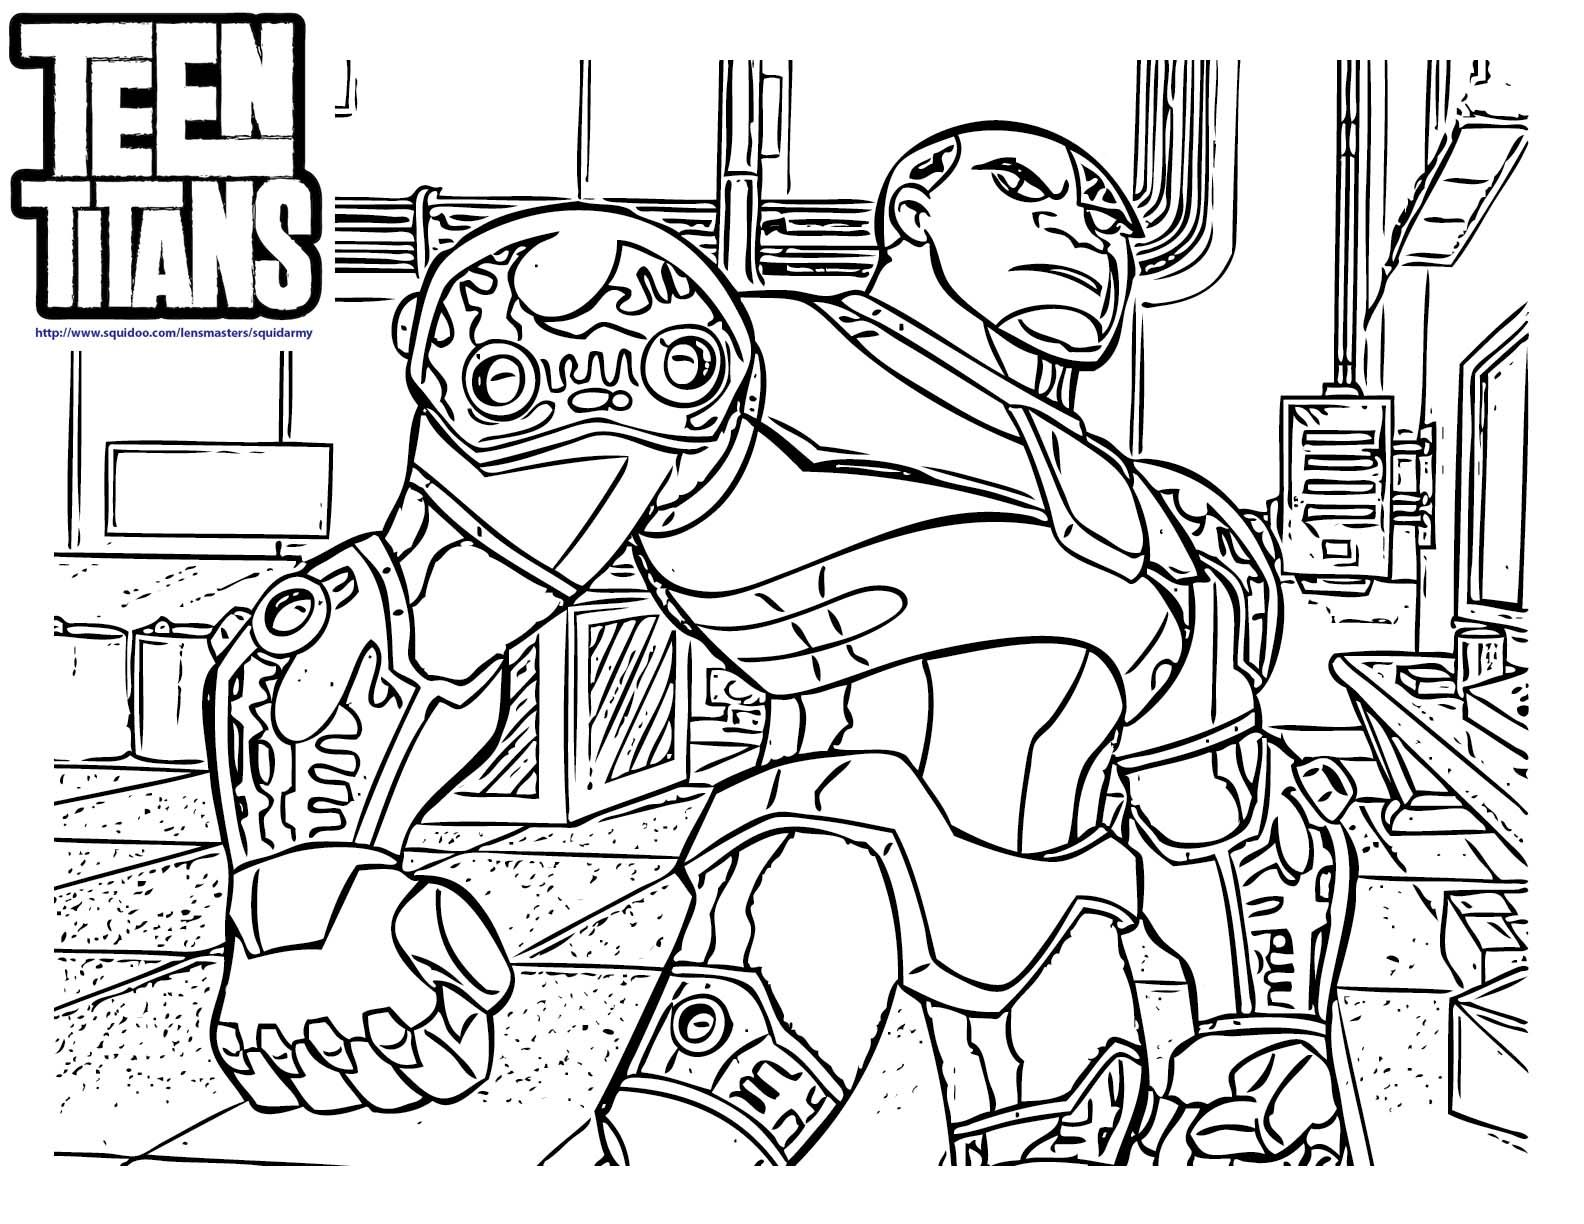 8 Pics of Teen Titans Cyborg Coloring Pages Cyborg Teen Titans